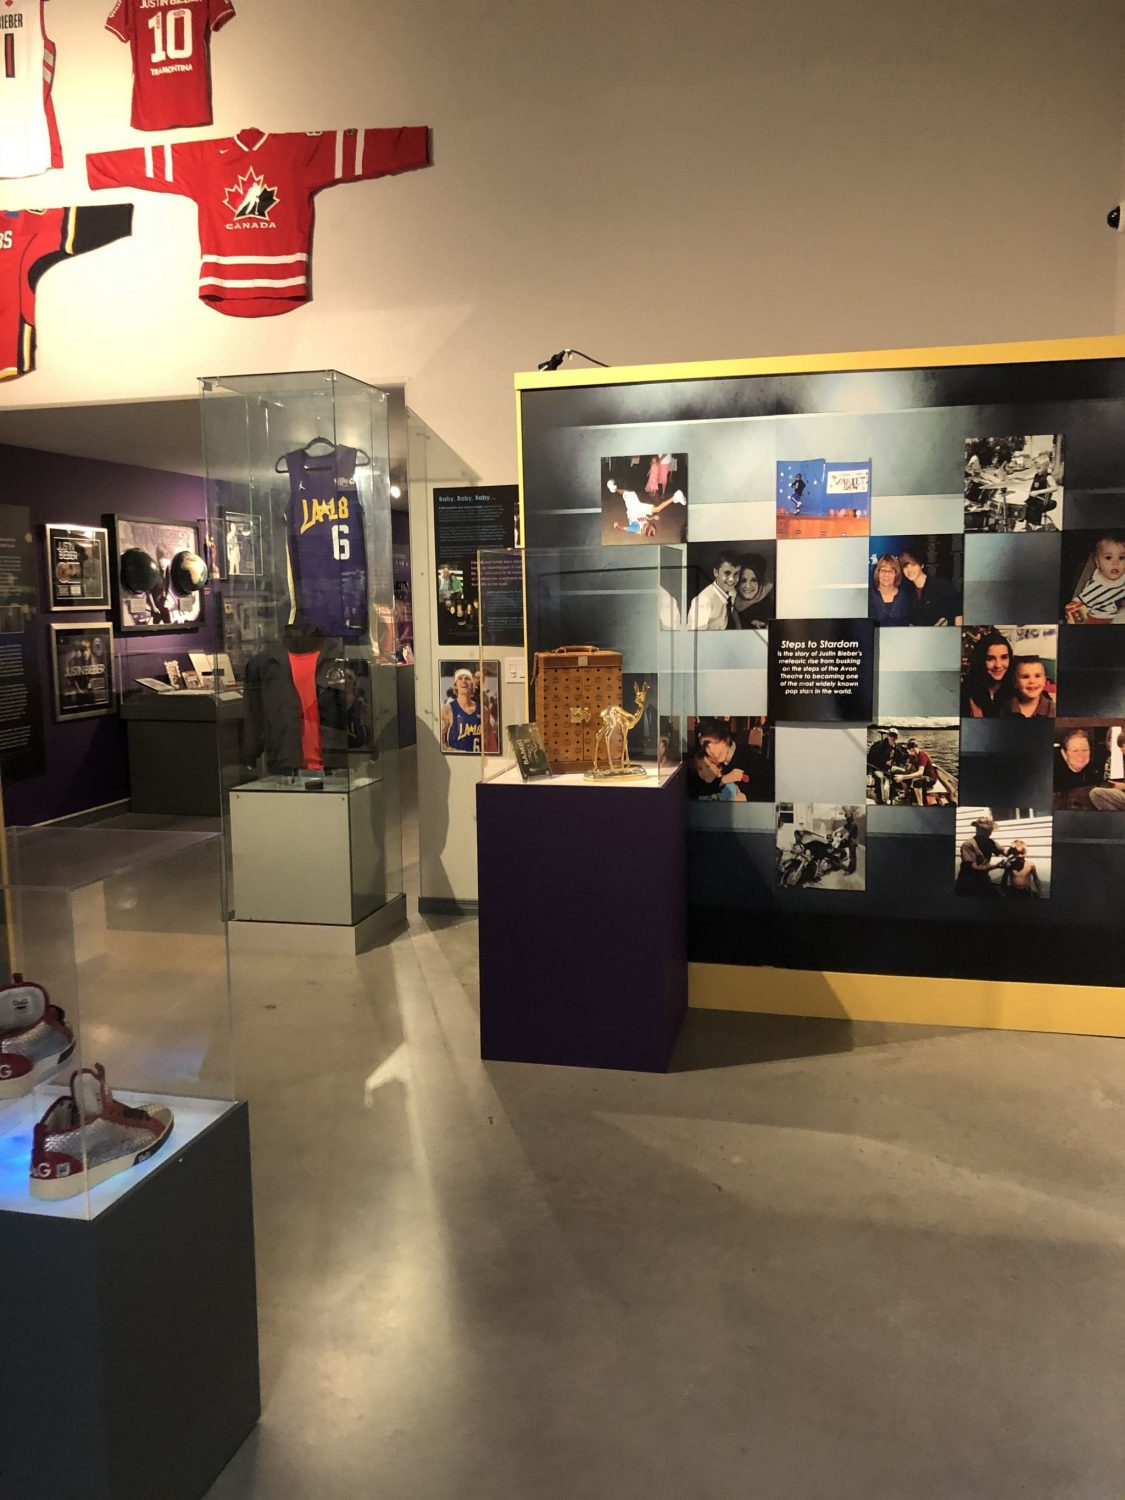 Justin Bieber: Steps to Stardom exhibit